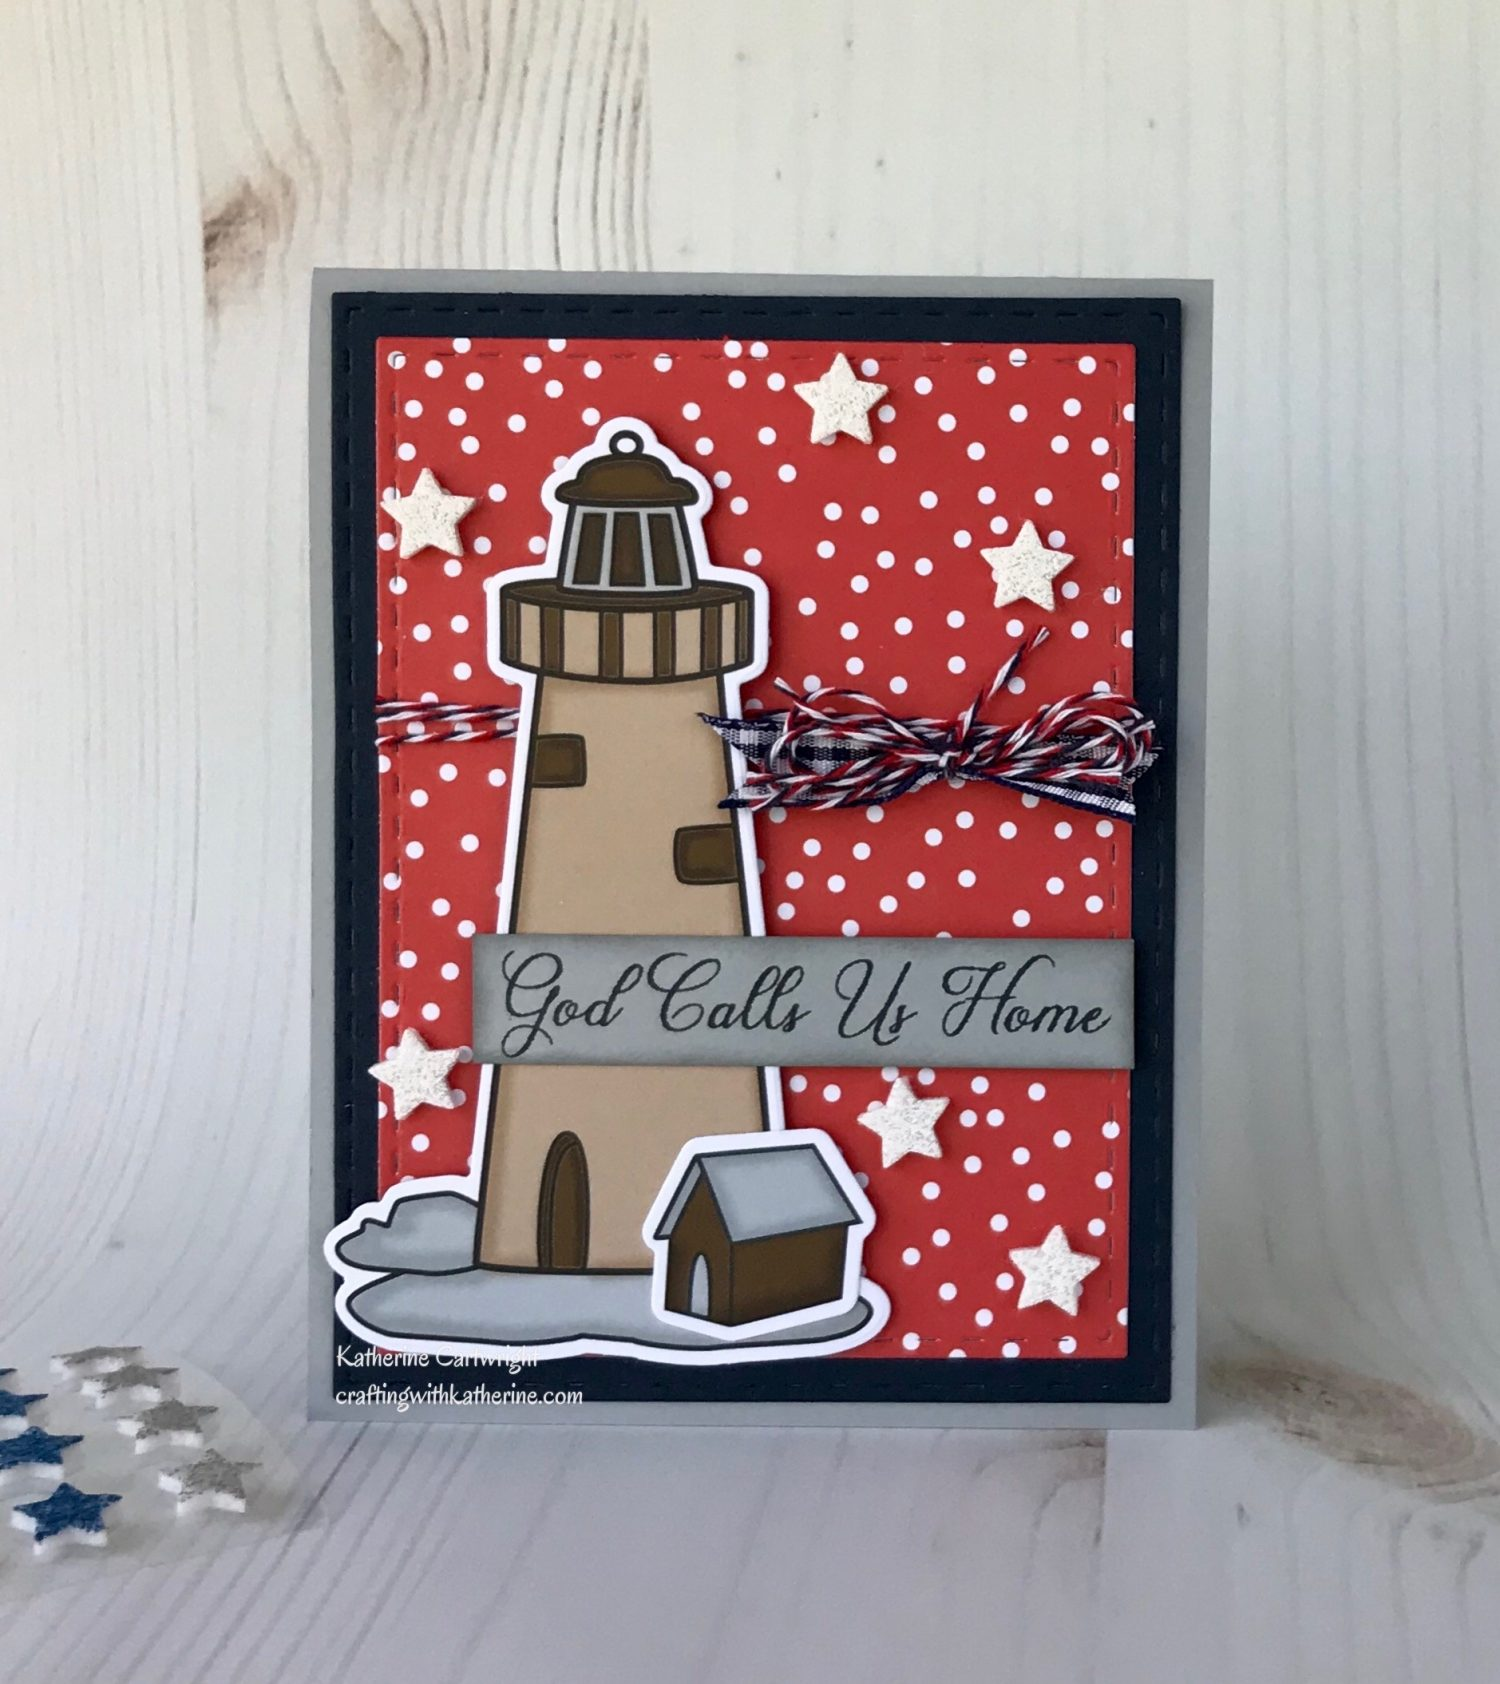 Handmade Cards: Happy New year, Small Scallop A2 and Christiansympathy